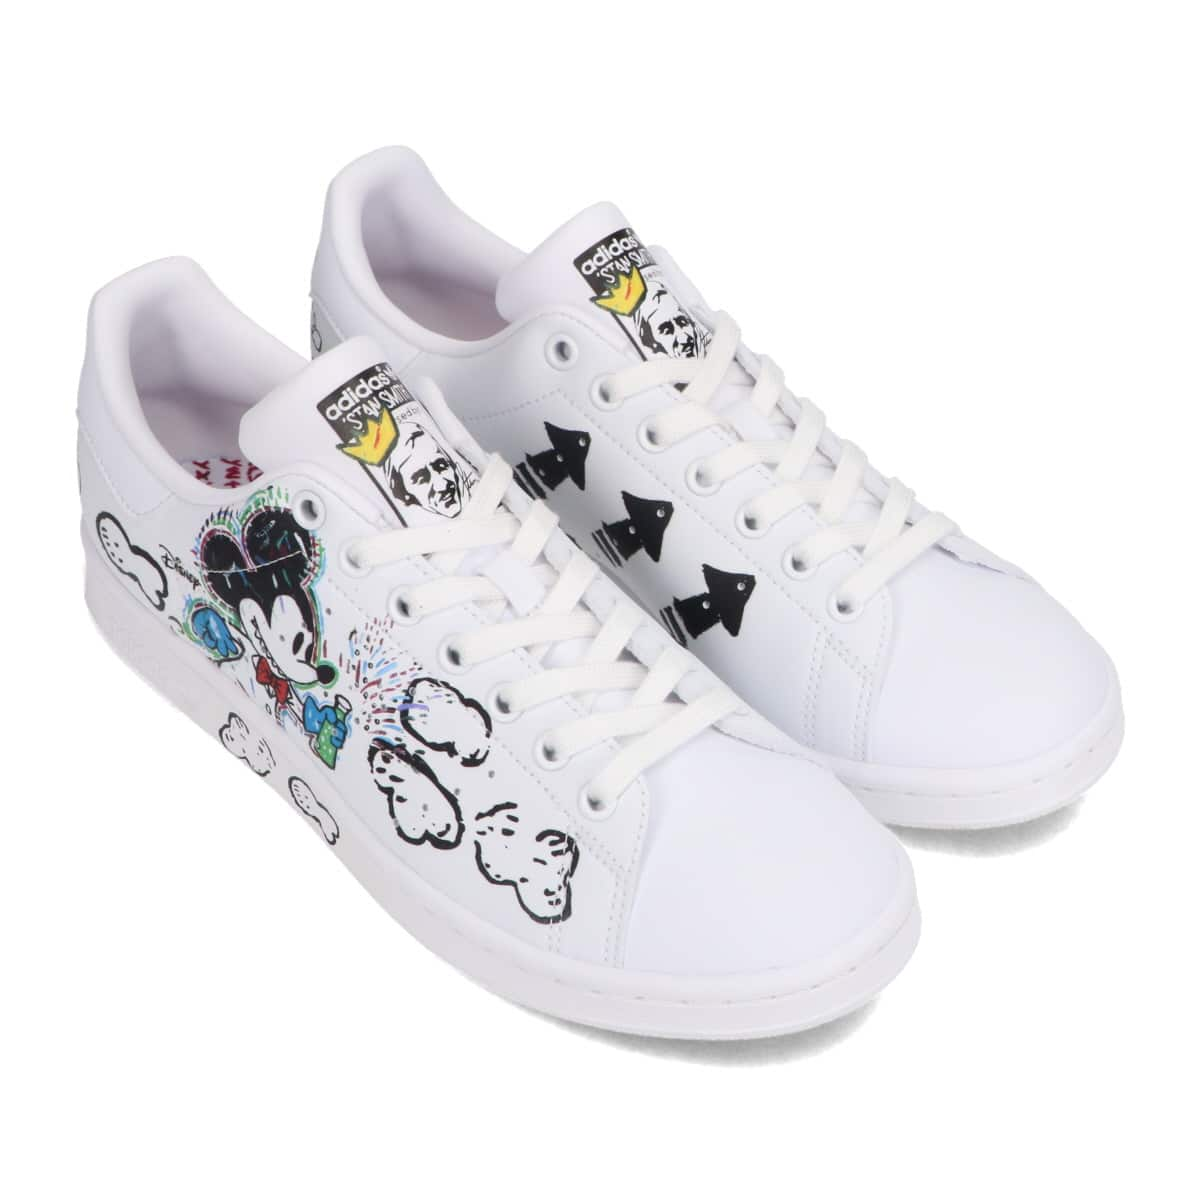 """adidas STAN SMITH """"Kasing Lung x Mickey Mouse x adidas Mickey Twist"""" FOOTWEAR WHITE/FOOTWEAR WHITE/CORE BLACK 20FW-S_photo_large"""